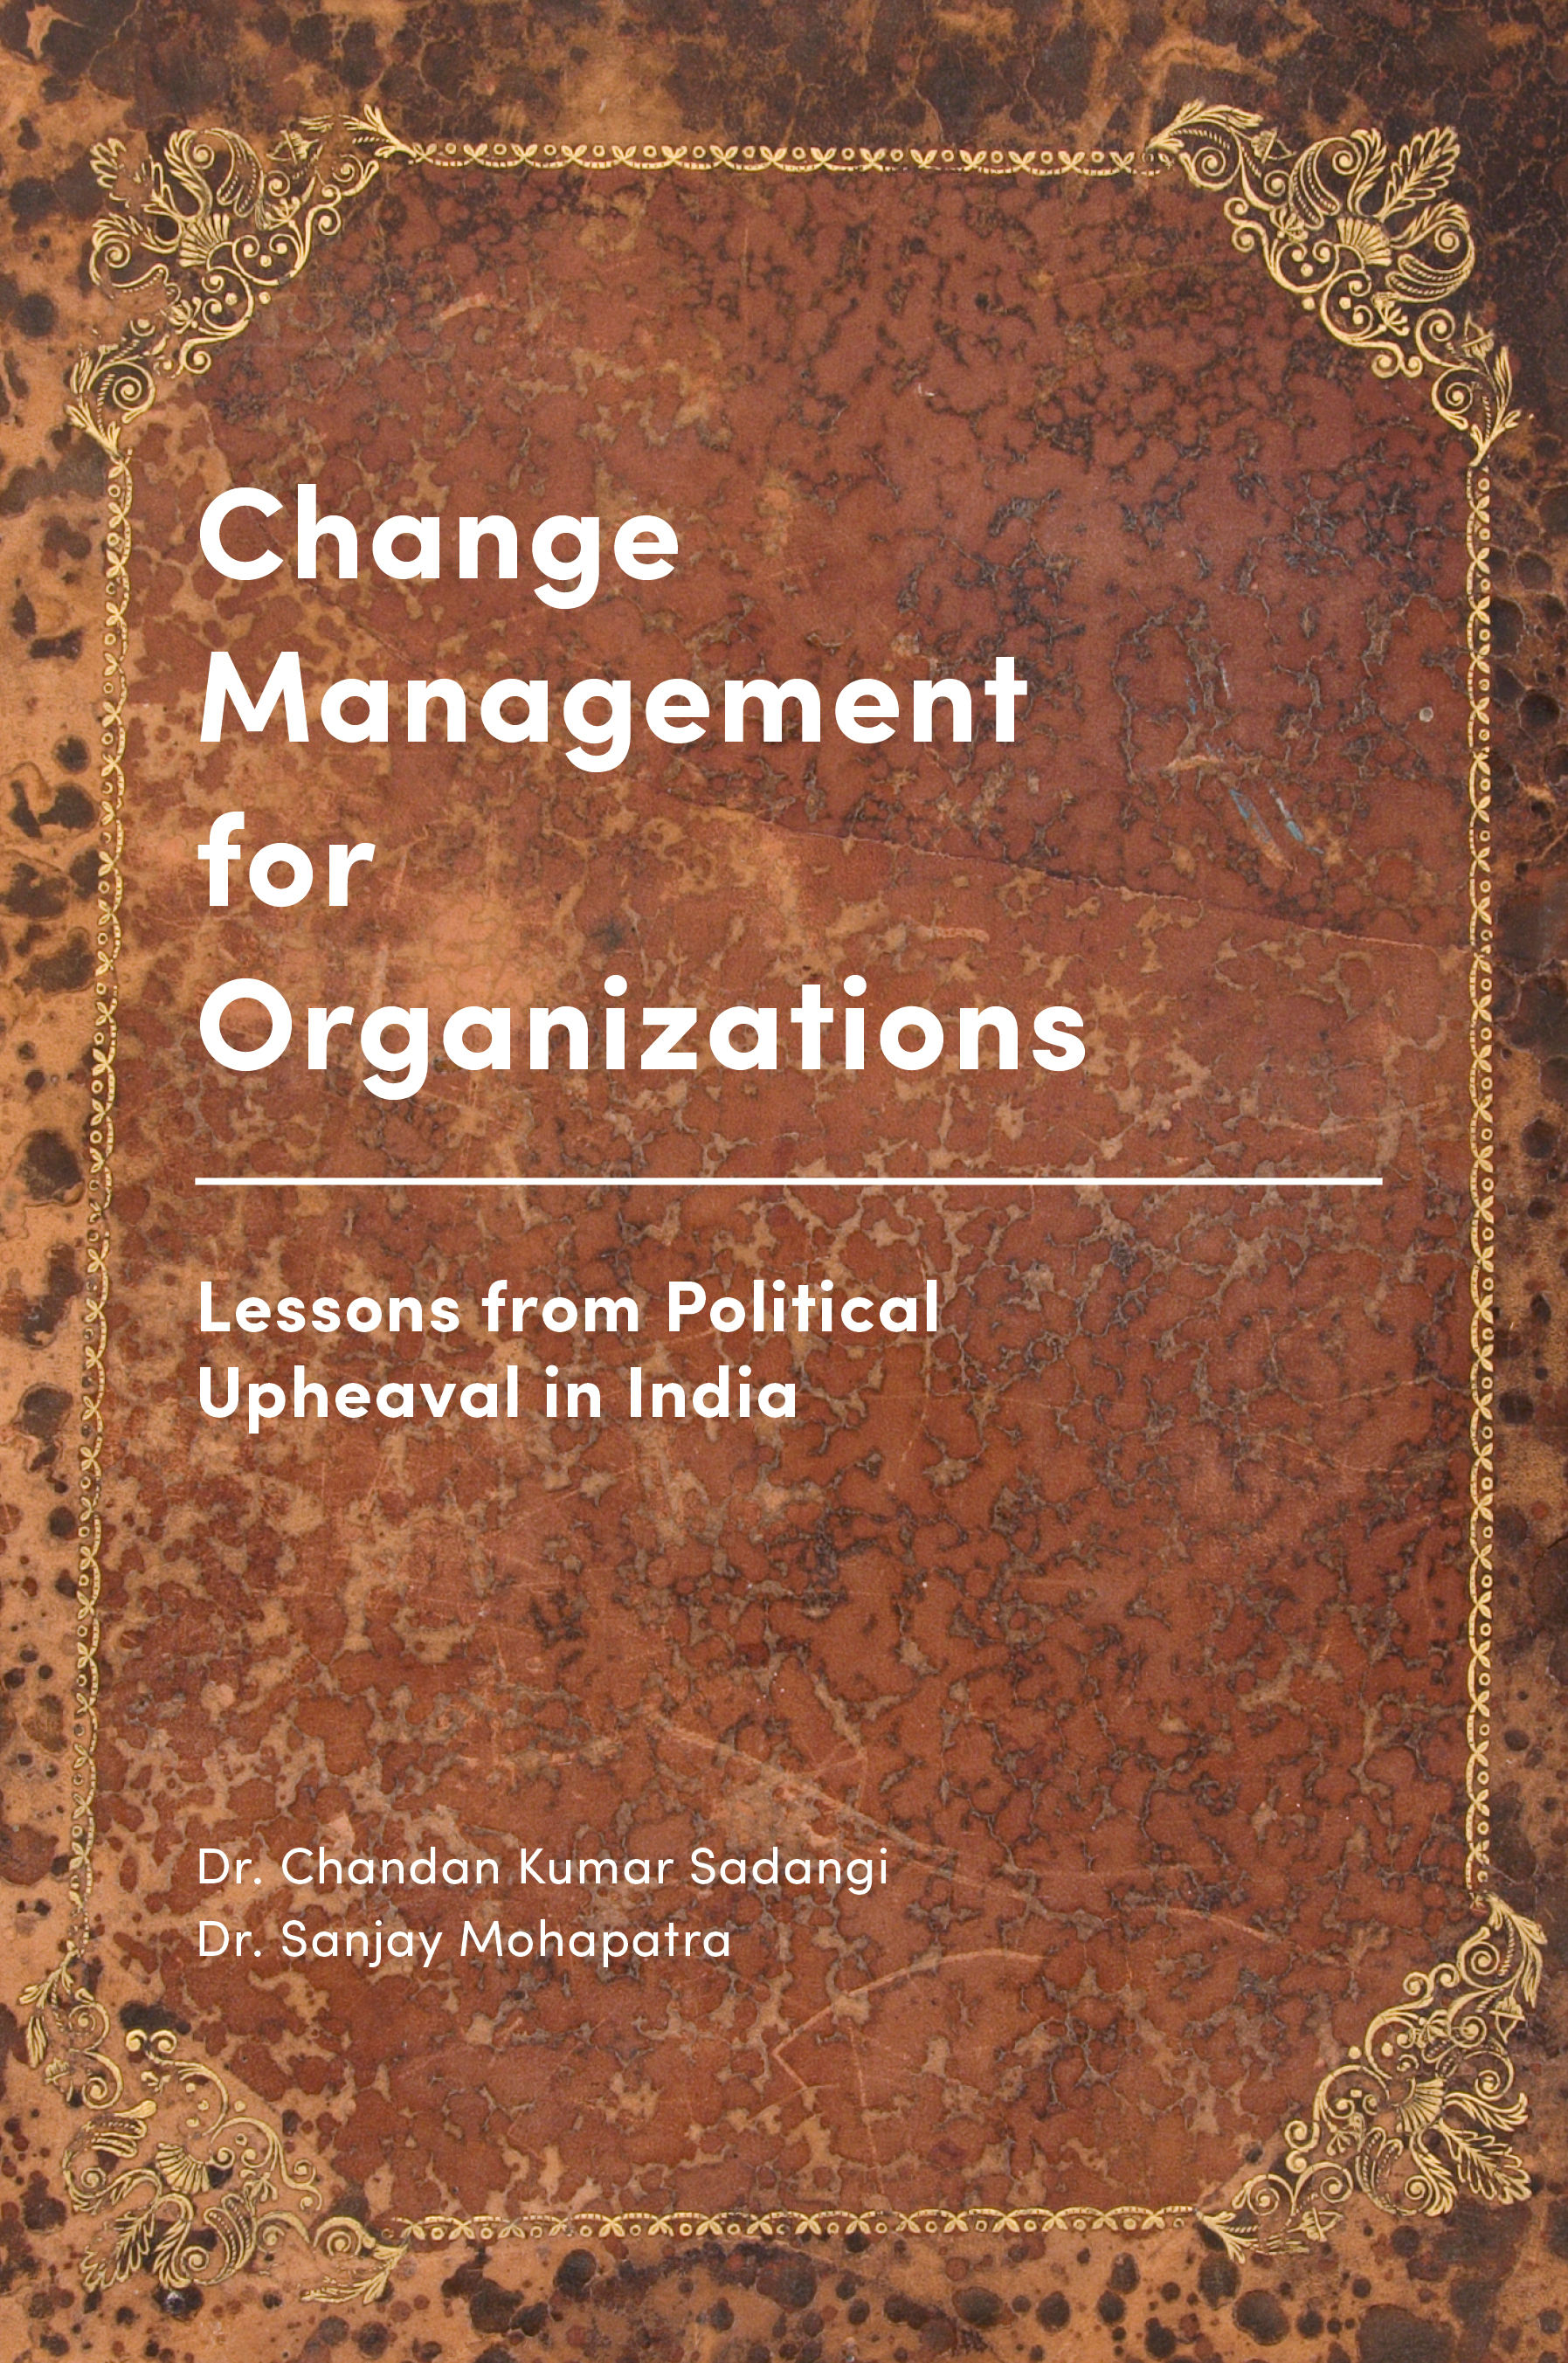 Book cover for Change Management for Organizations:  Lessons from Political Upheaval in India a book by Chandan Kumar Sadangi, Sanjay  Mohapatra